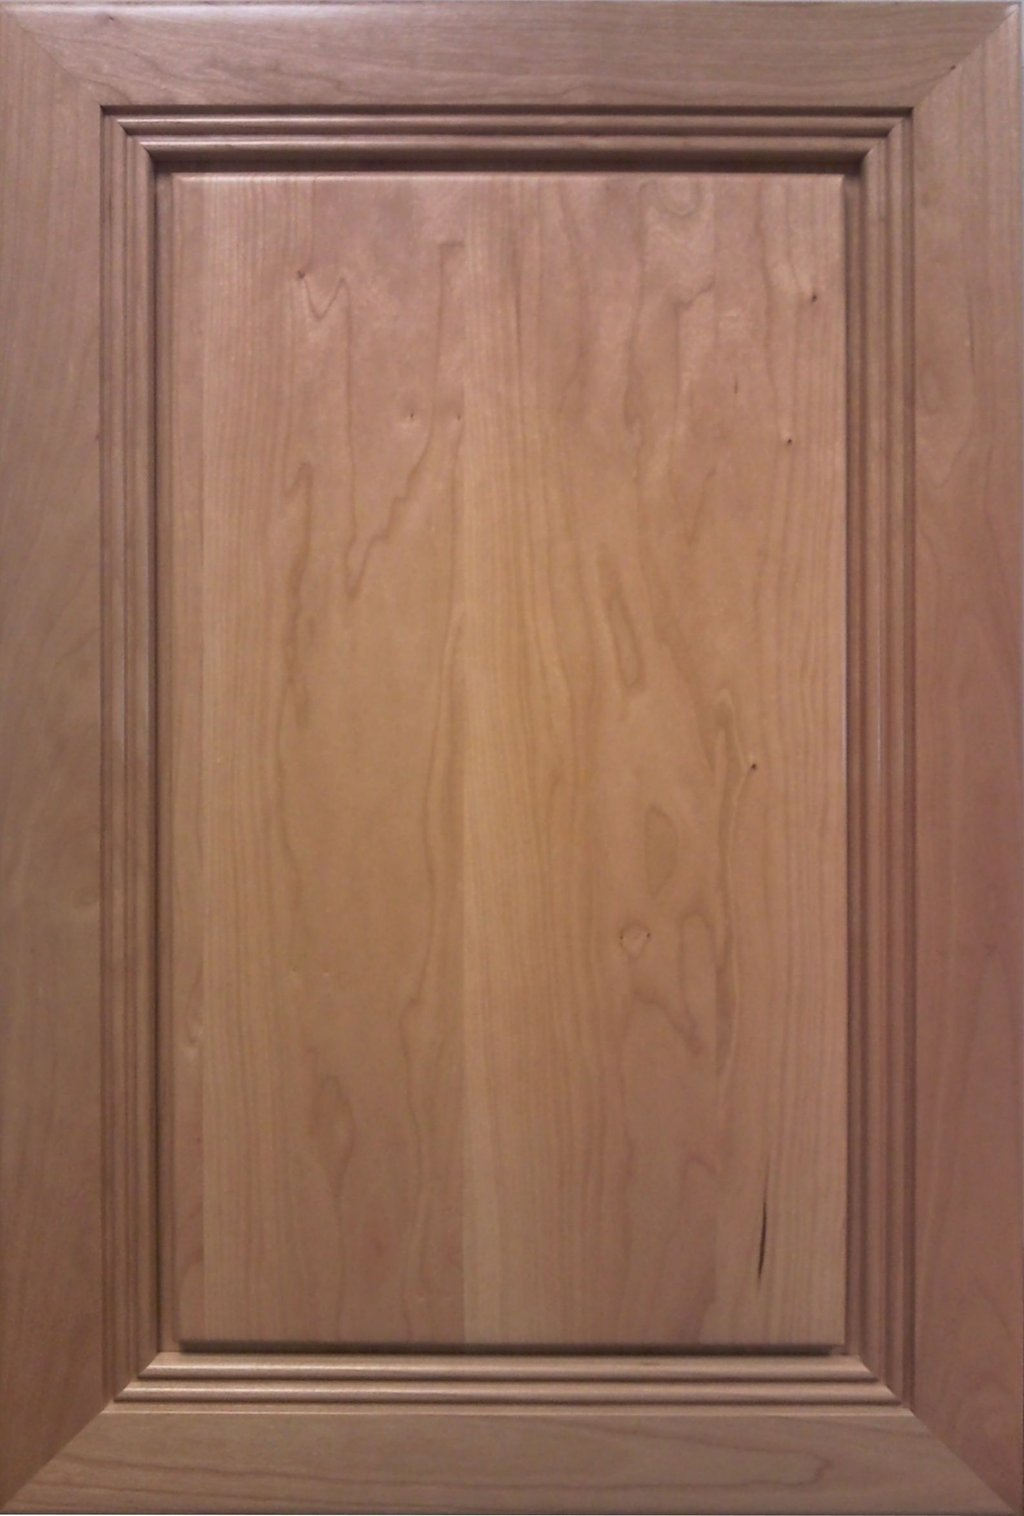 Fallbrook Cabinet Door Mitered Raised Panel Cabinet How To Match Thermofoil Cabinet Doors